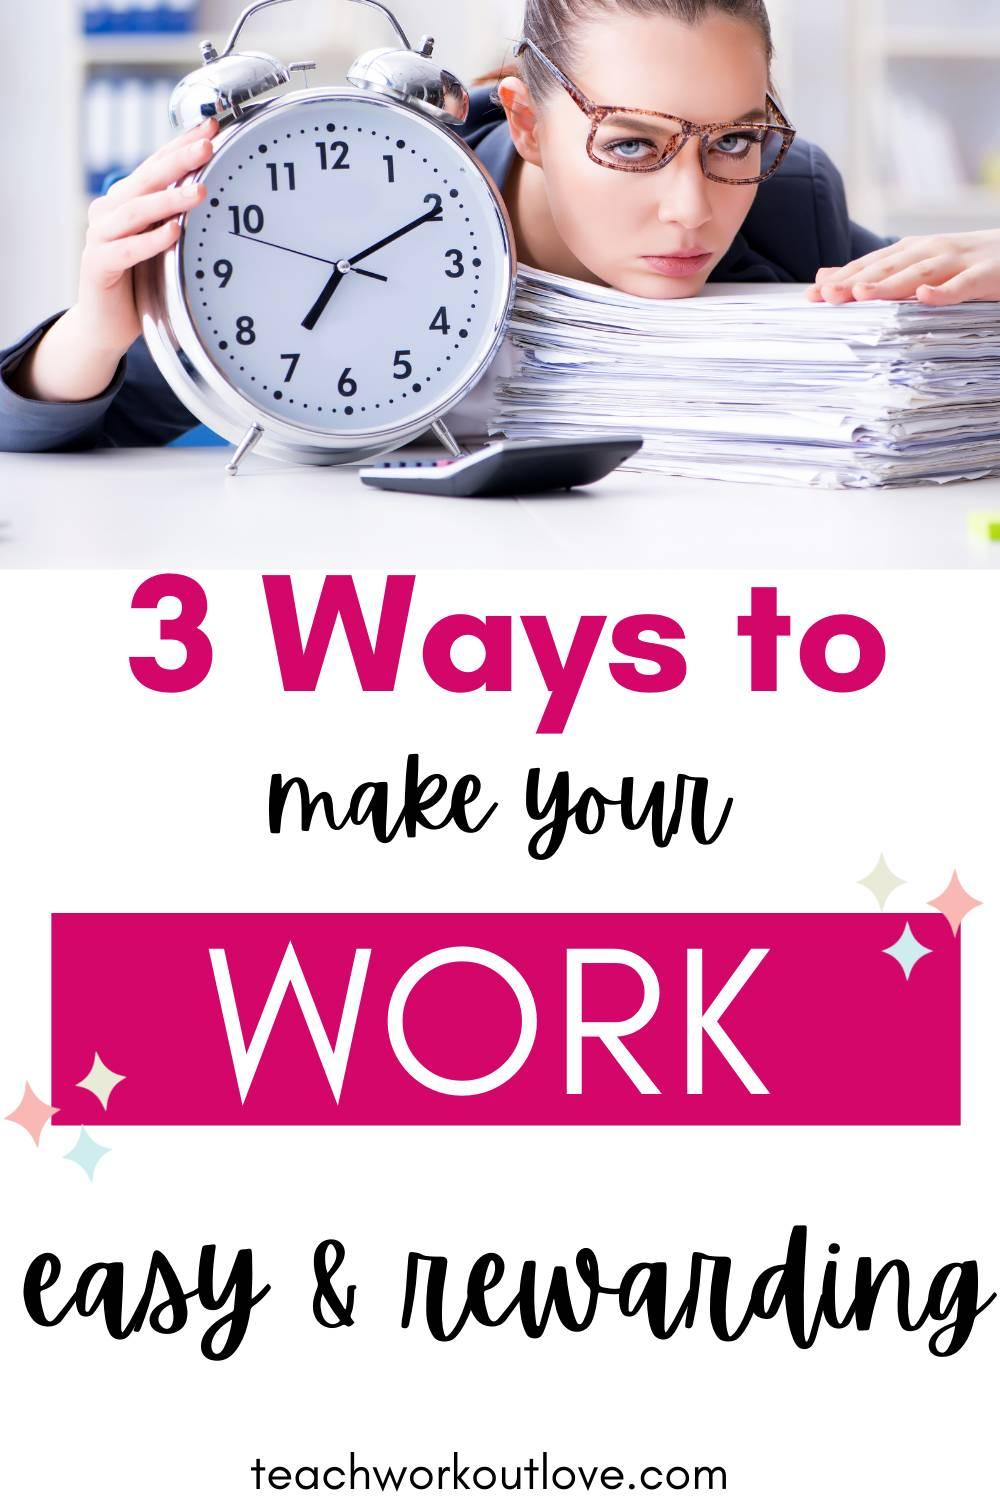 Do you get bored with your work? Is there a lack of excitement at work? Here are three easy ways to make your work more rewarding!